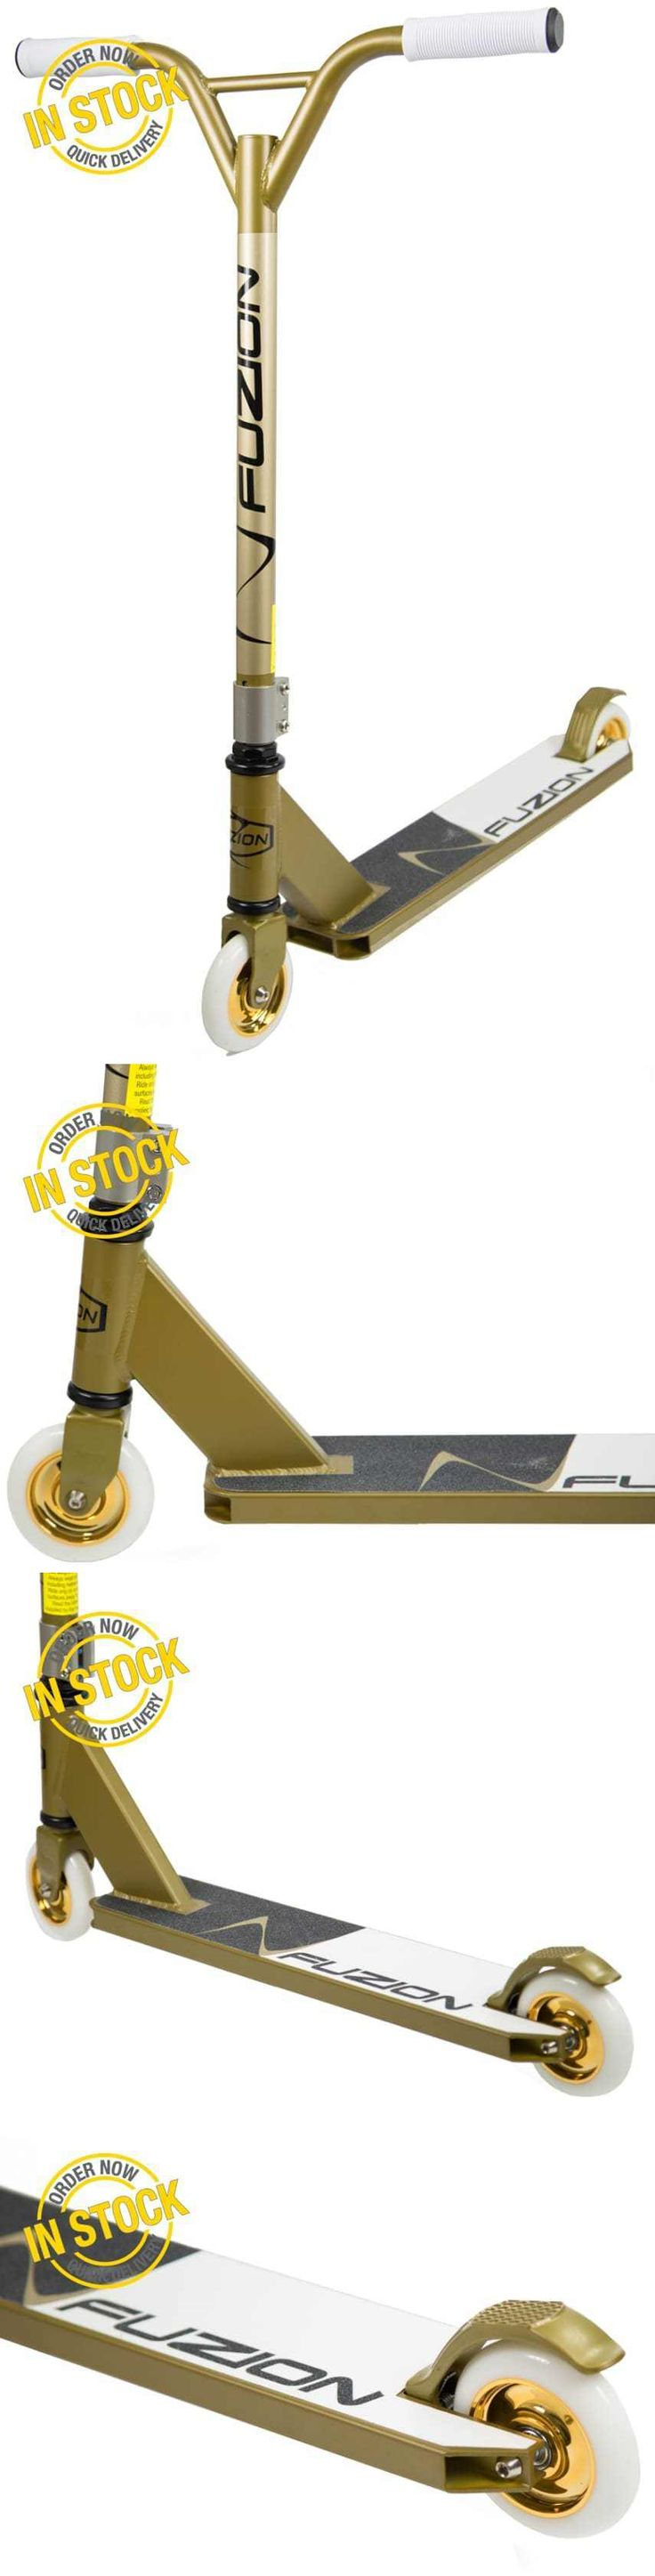 Kick Scooters 11331: Fuzion X-3 Pro Scooter (Gold) Outdoor Kick Scooter Tricks Lightweight Aluminum -> BUY IT NOW ONLY: $110.42 on eBay!